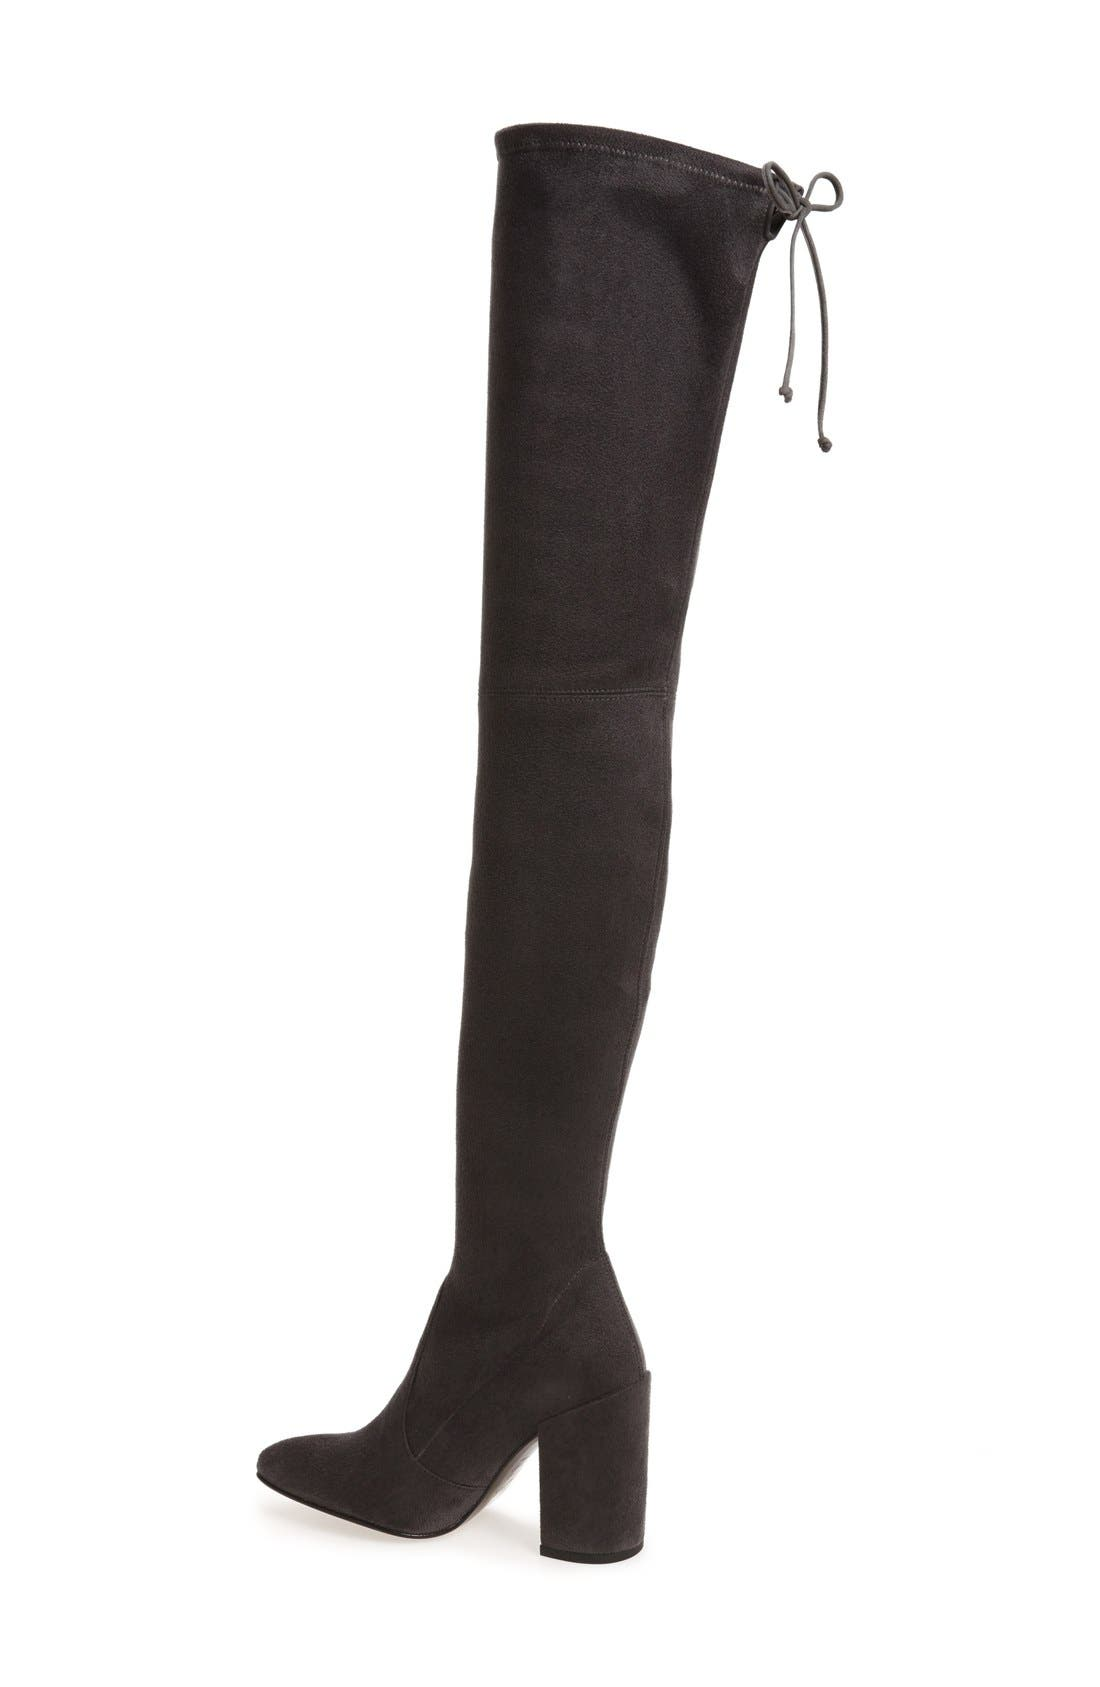 'All Legs' Thigh High Boot,                             Alternate thumbnail 2, color,                             Grey Ultrastretch